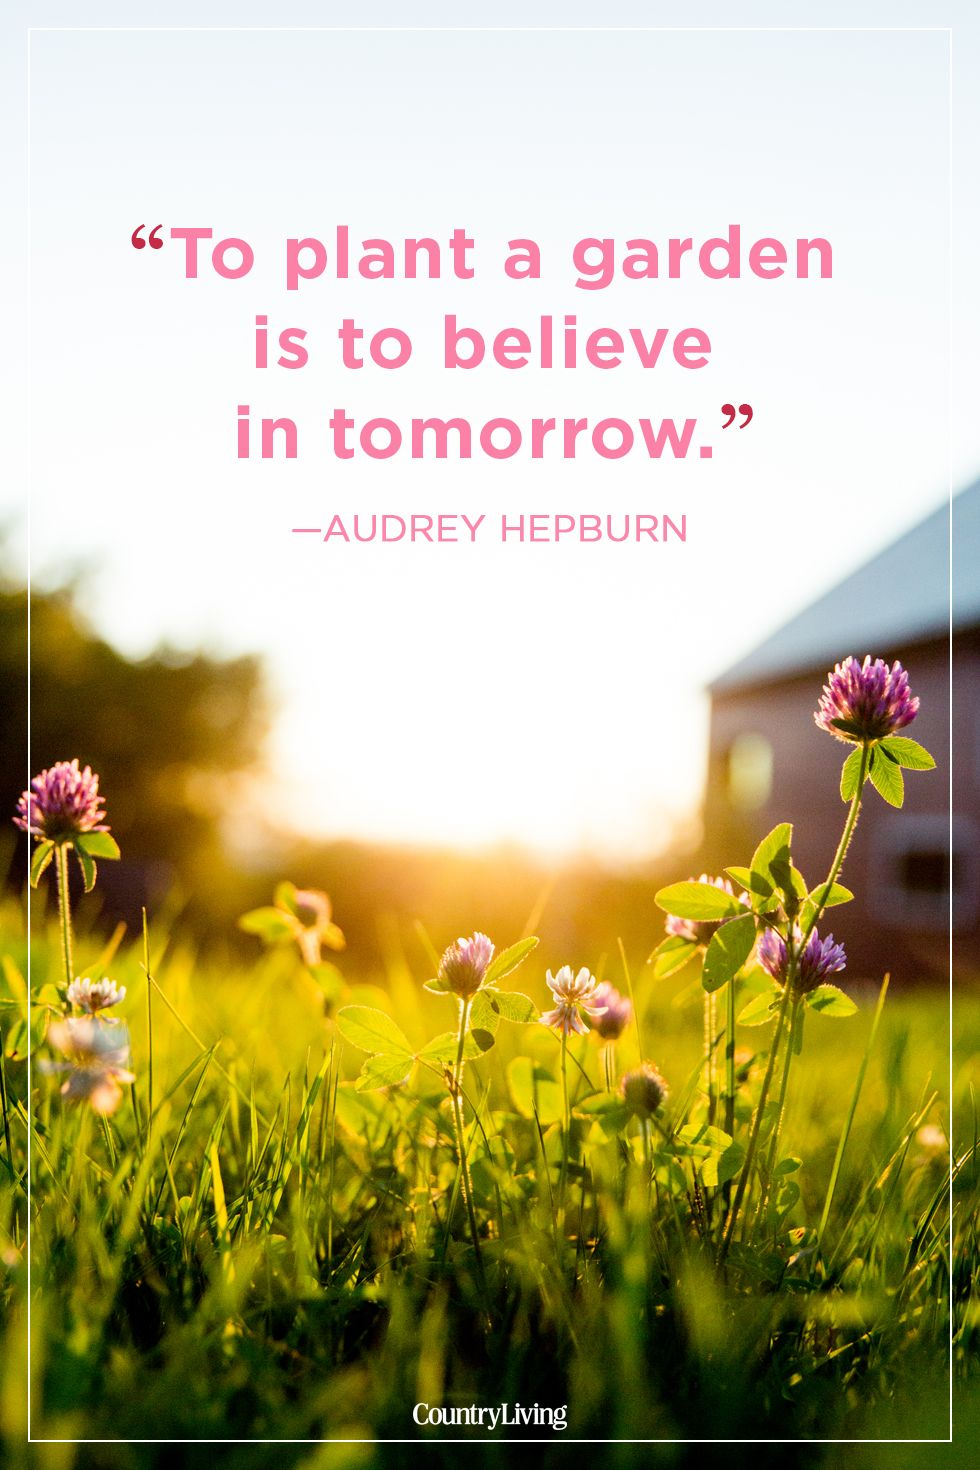 Express Gratitude 24 Absolutely Beautiful Quotes About Summer Country Living Magazine 24 Best Summer Quotes And Sayings Inspirational Quotes About Summer